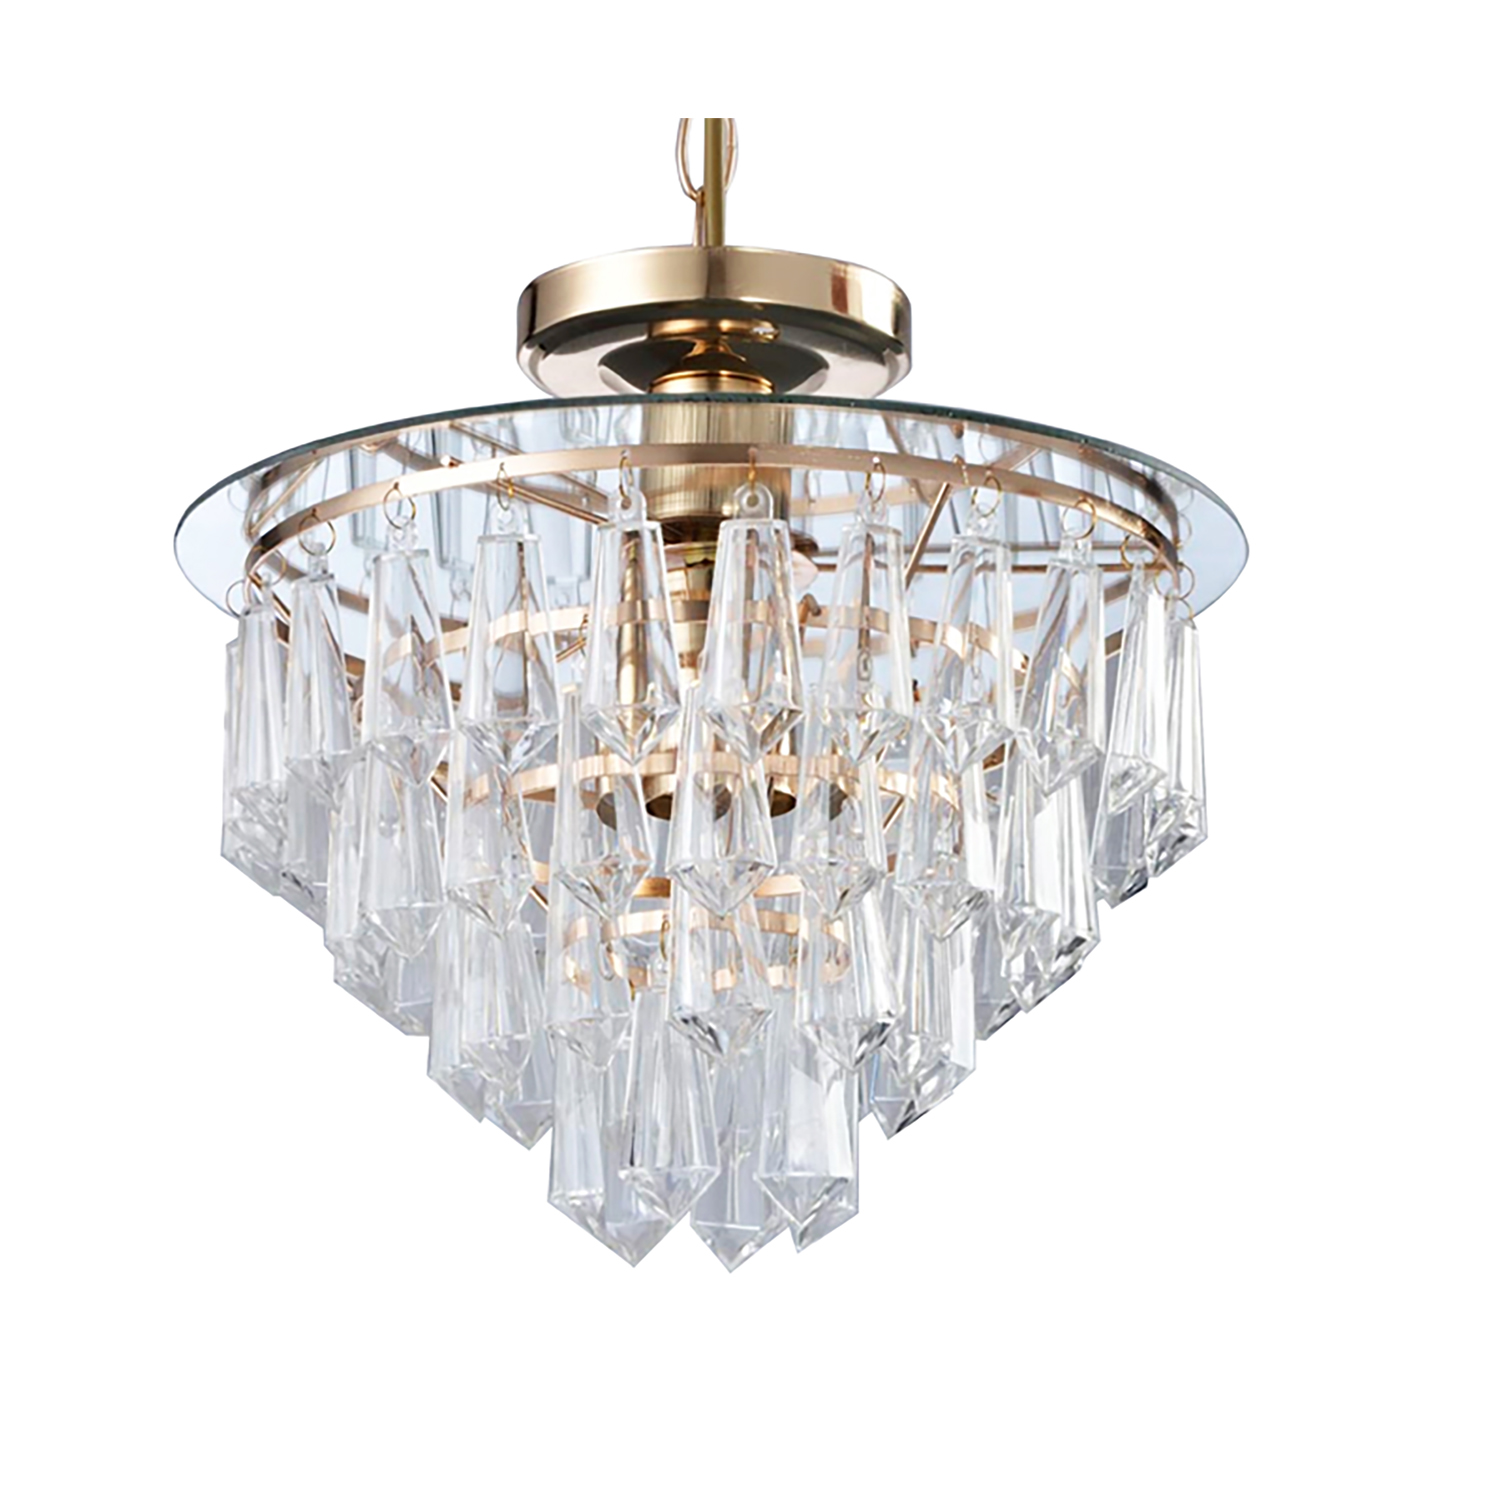 CEILING LIGHT-ACRYLIC TIER CHANDELIER